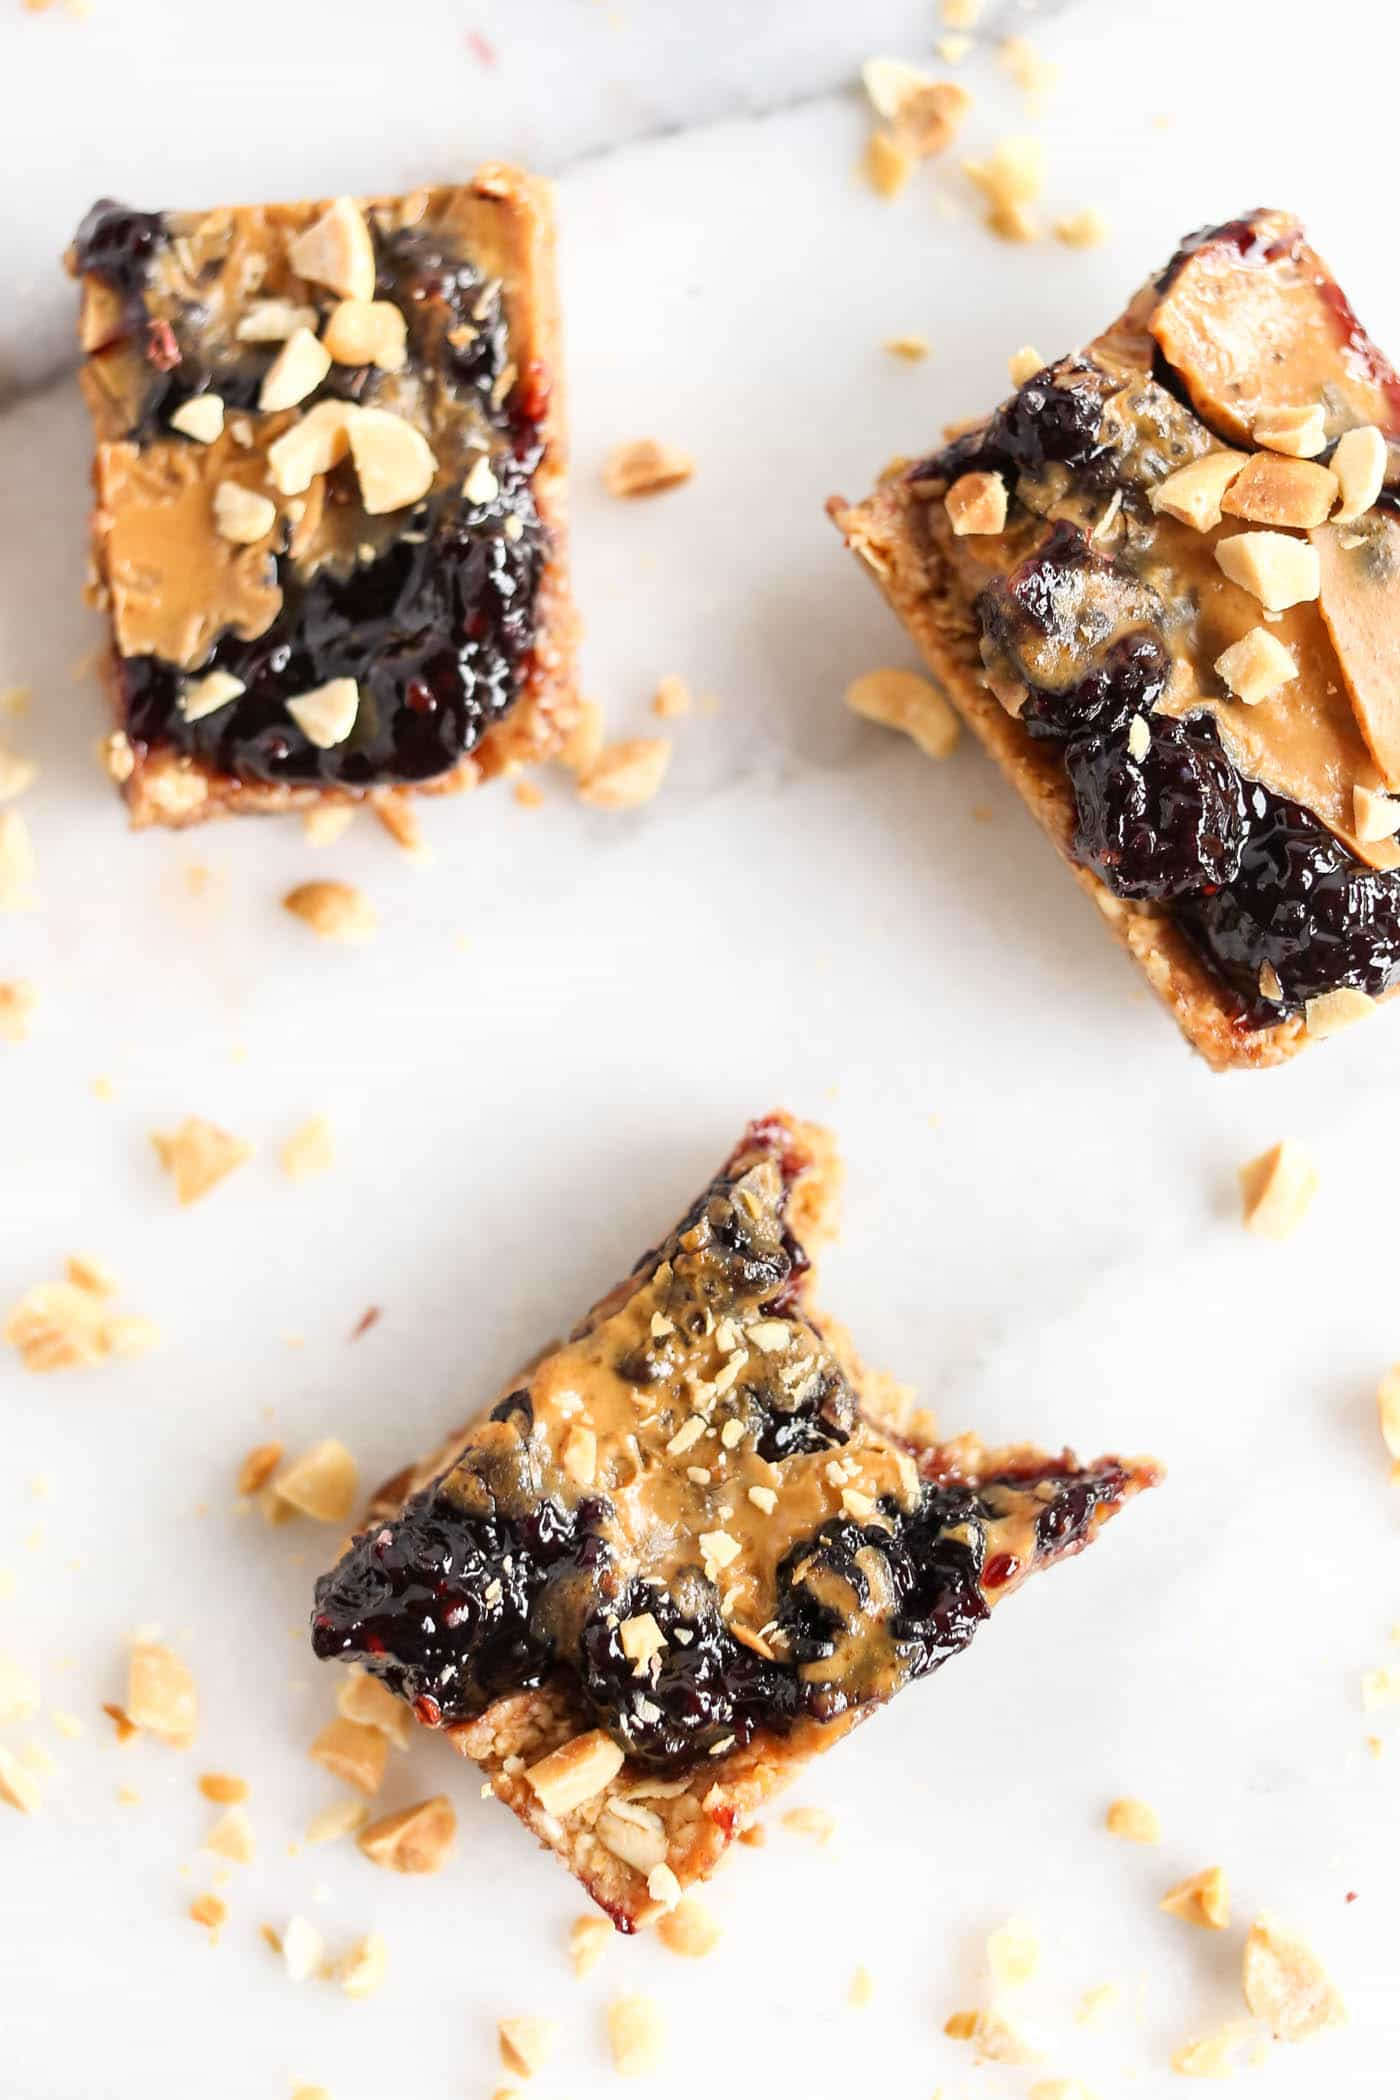 Peanut Butter + Jelly Snack Bars >> only 8 ingredients, naturally gf, no refined sugars and 100% vegan!